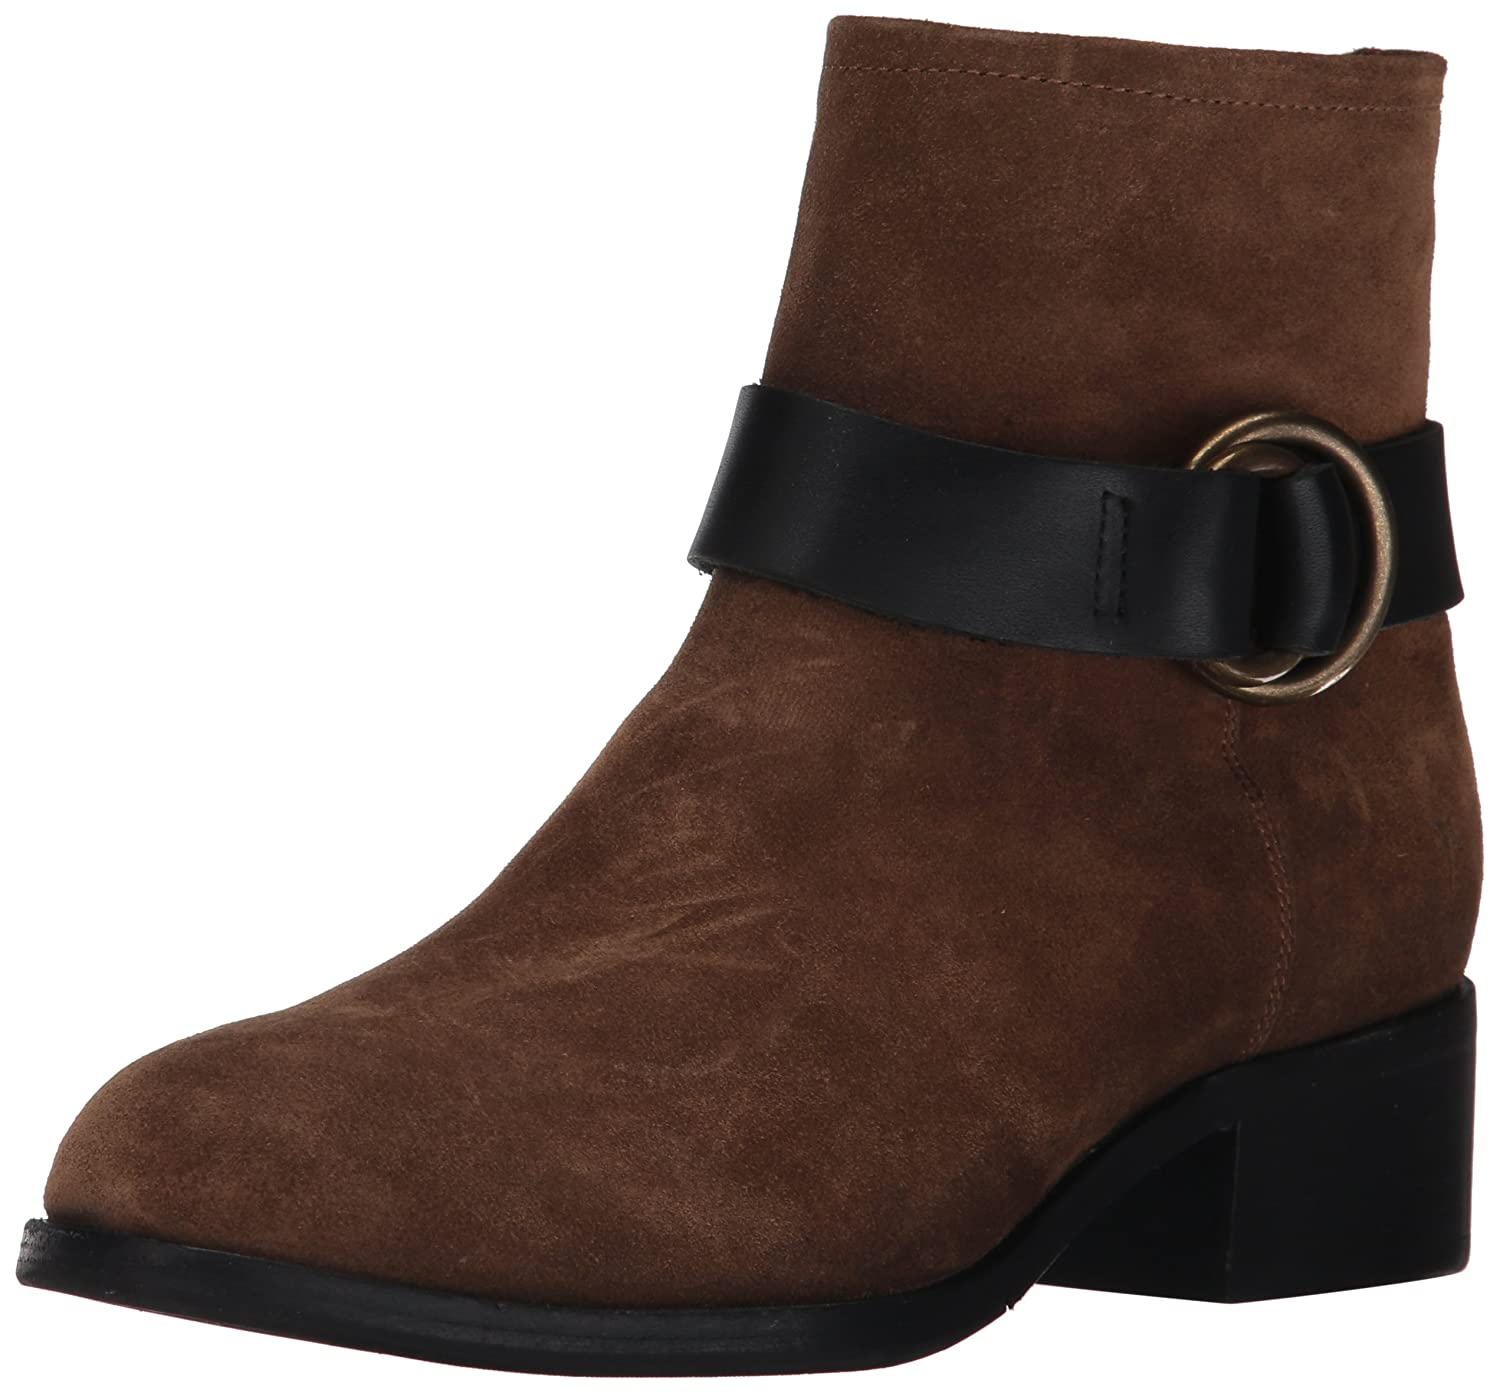 FRYE Women's Kristen Harness Short Boot B01MQYGEO8 8.5 B(M) US|Chestnut Soft Oiled Suede